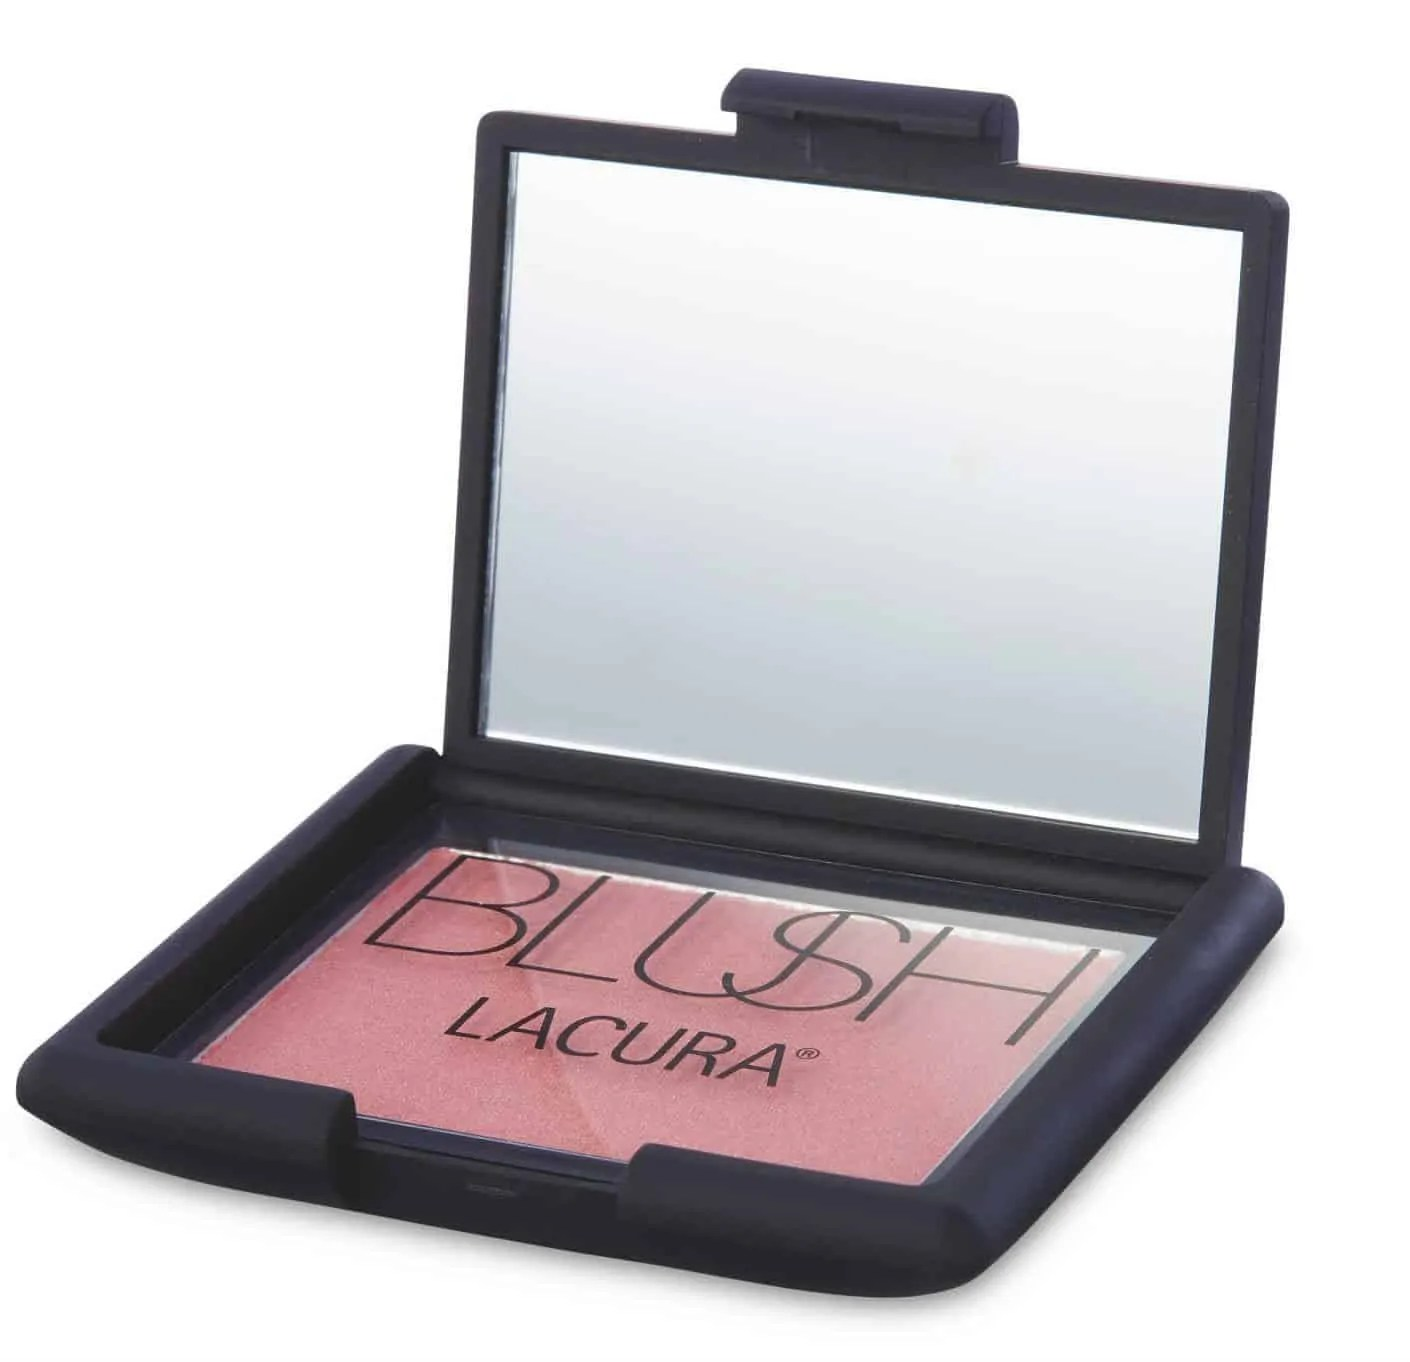 Where to find designer makeup and perfume dupes aldi